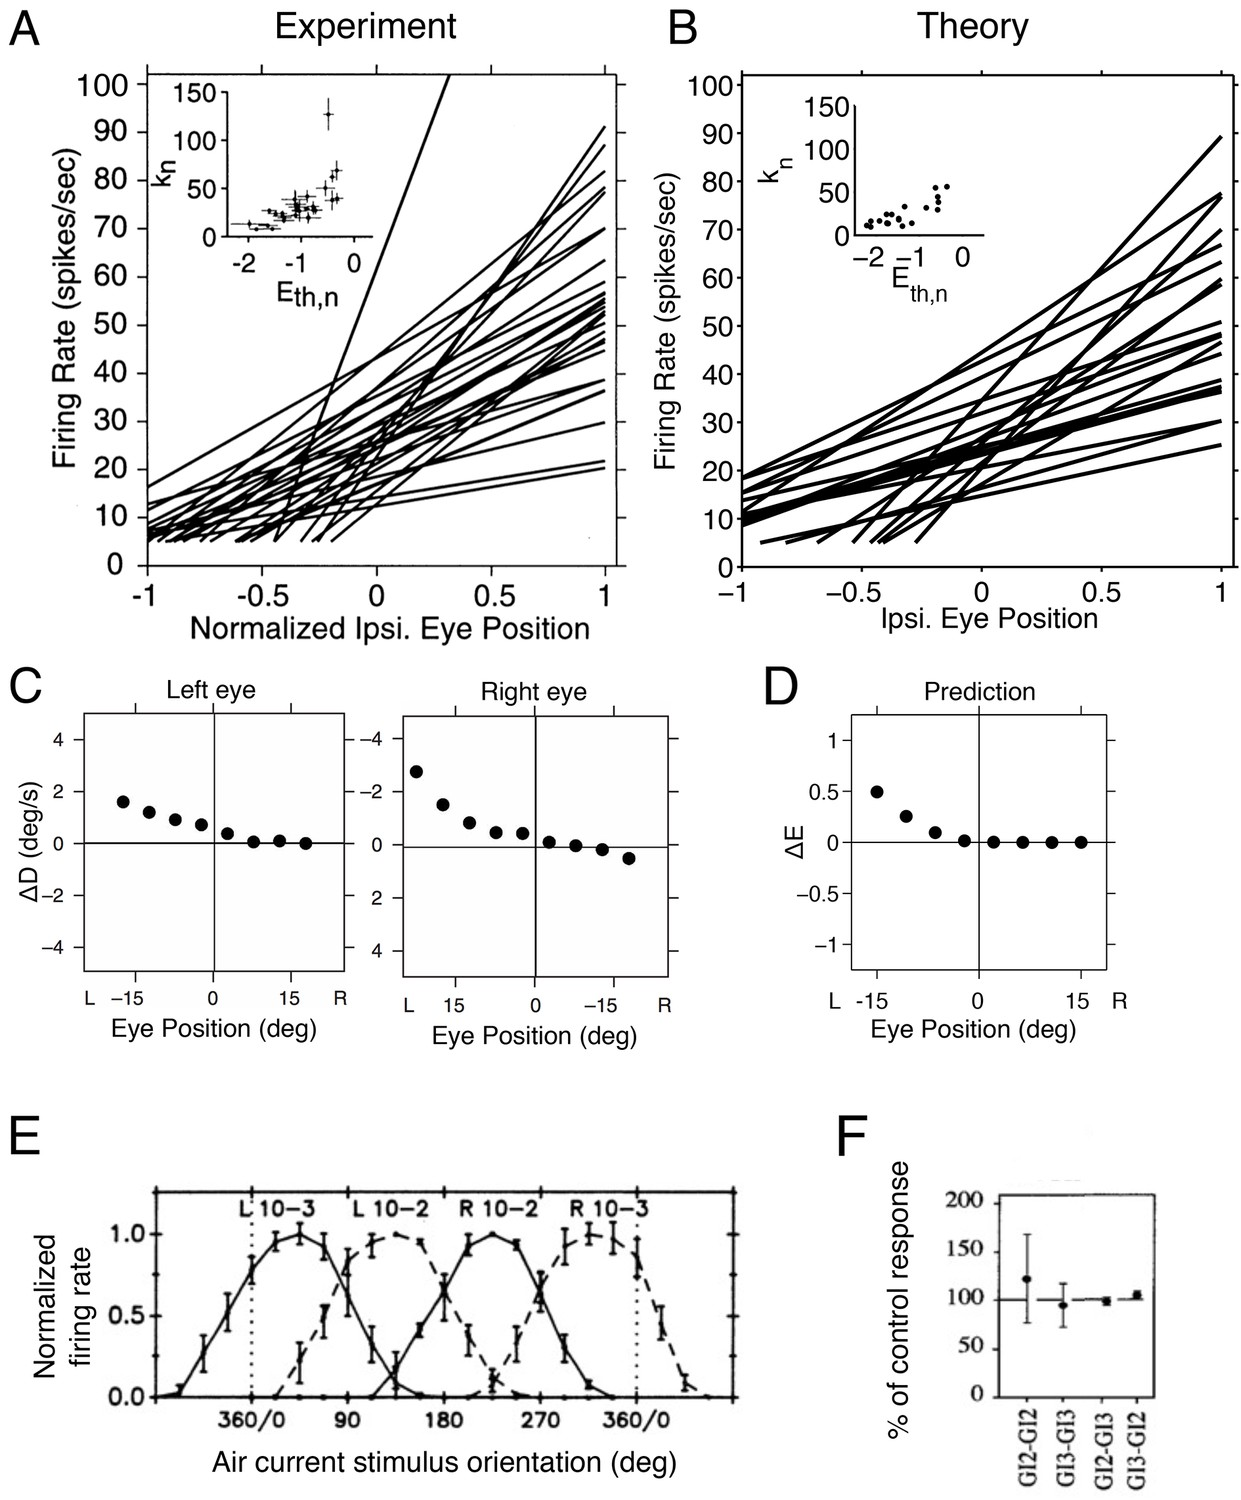 Optimal Compensation For Neuron Loss Elife 360 Degree Diagram Related Keywords Suggestions Tuning Curves And Inactivation Experiments In The Oculomotor Integrator Of Goldfish Cricket Cercal System